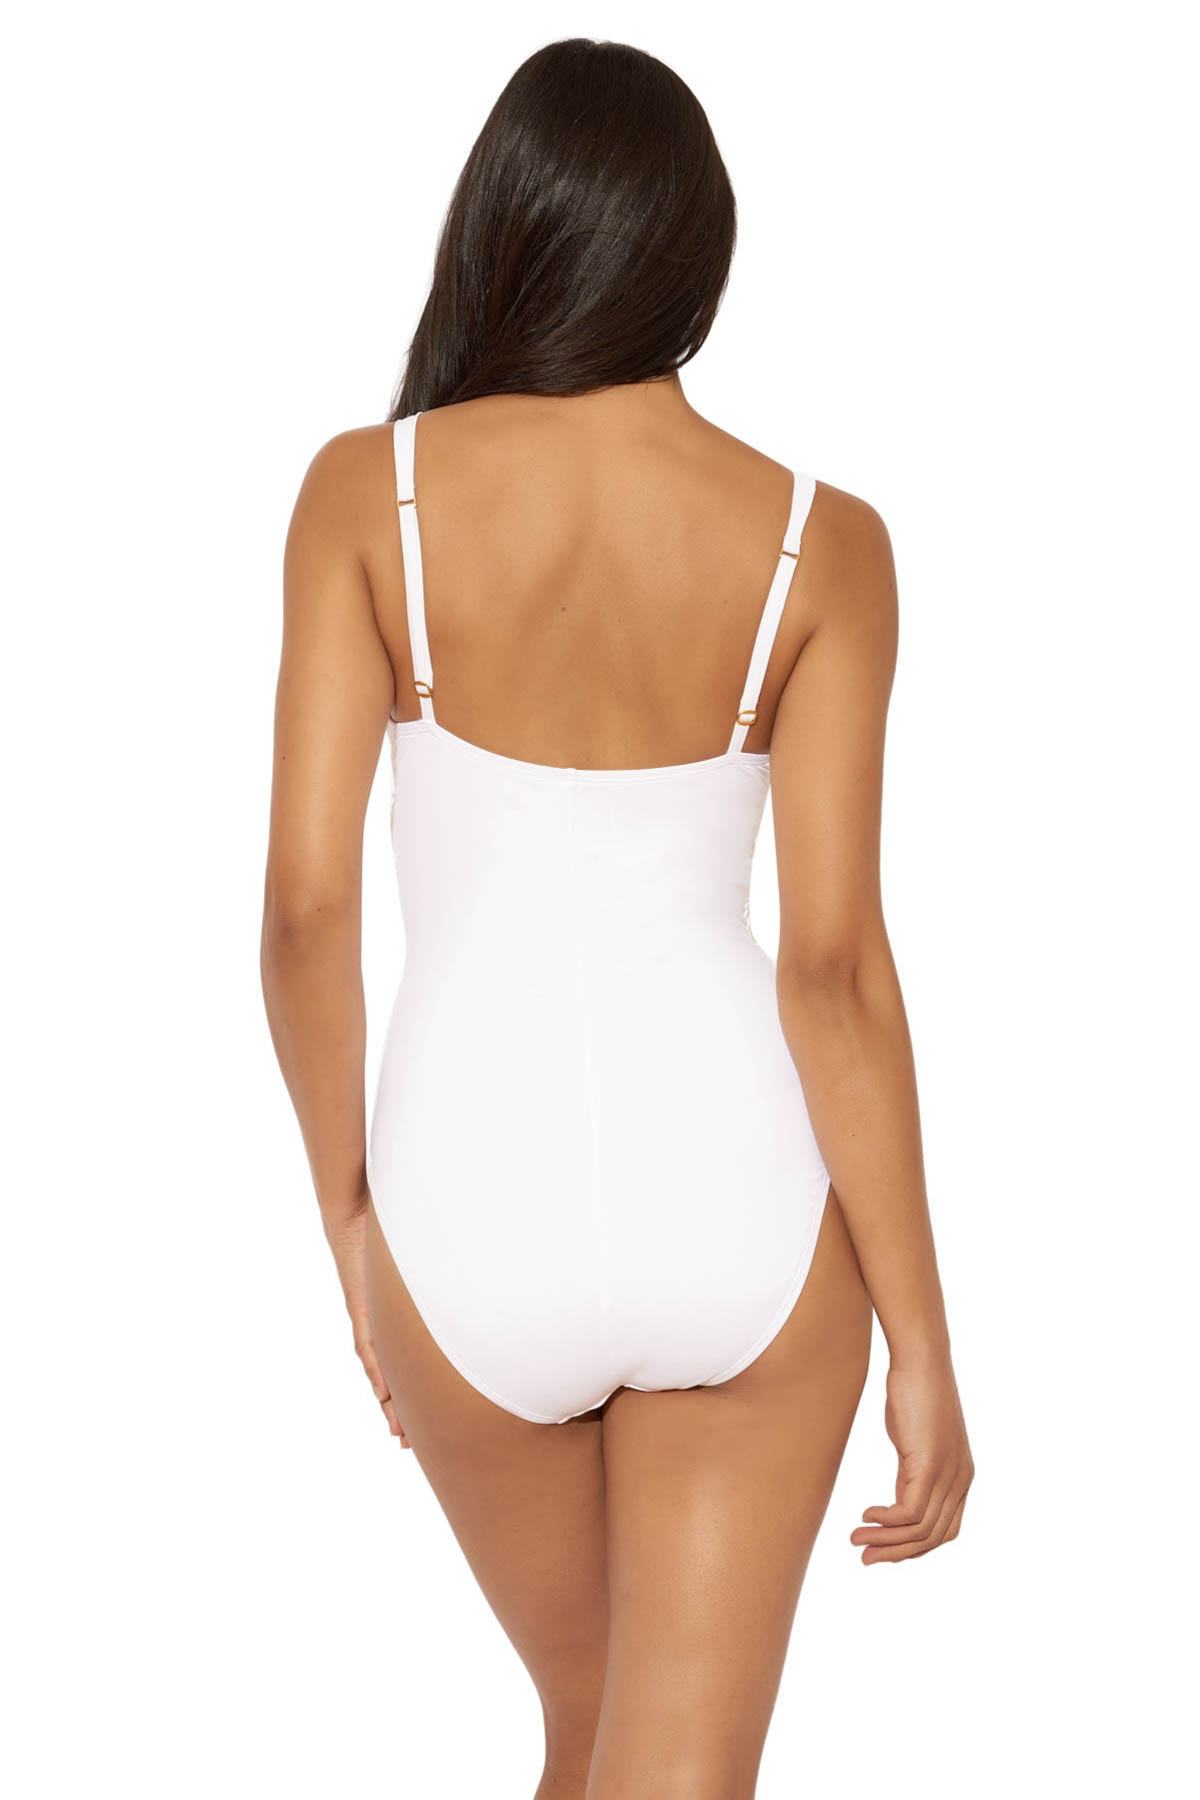 Lattice Over The Shoulder One Piece Swimsuit - White 2